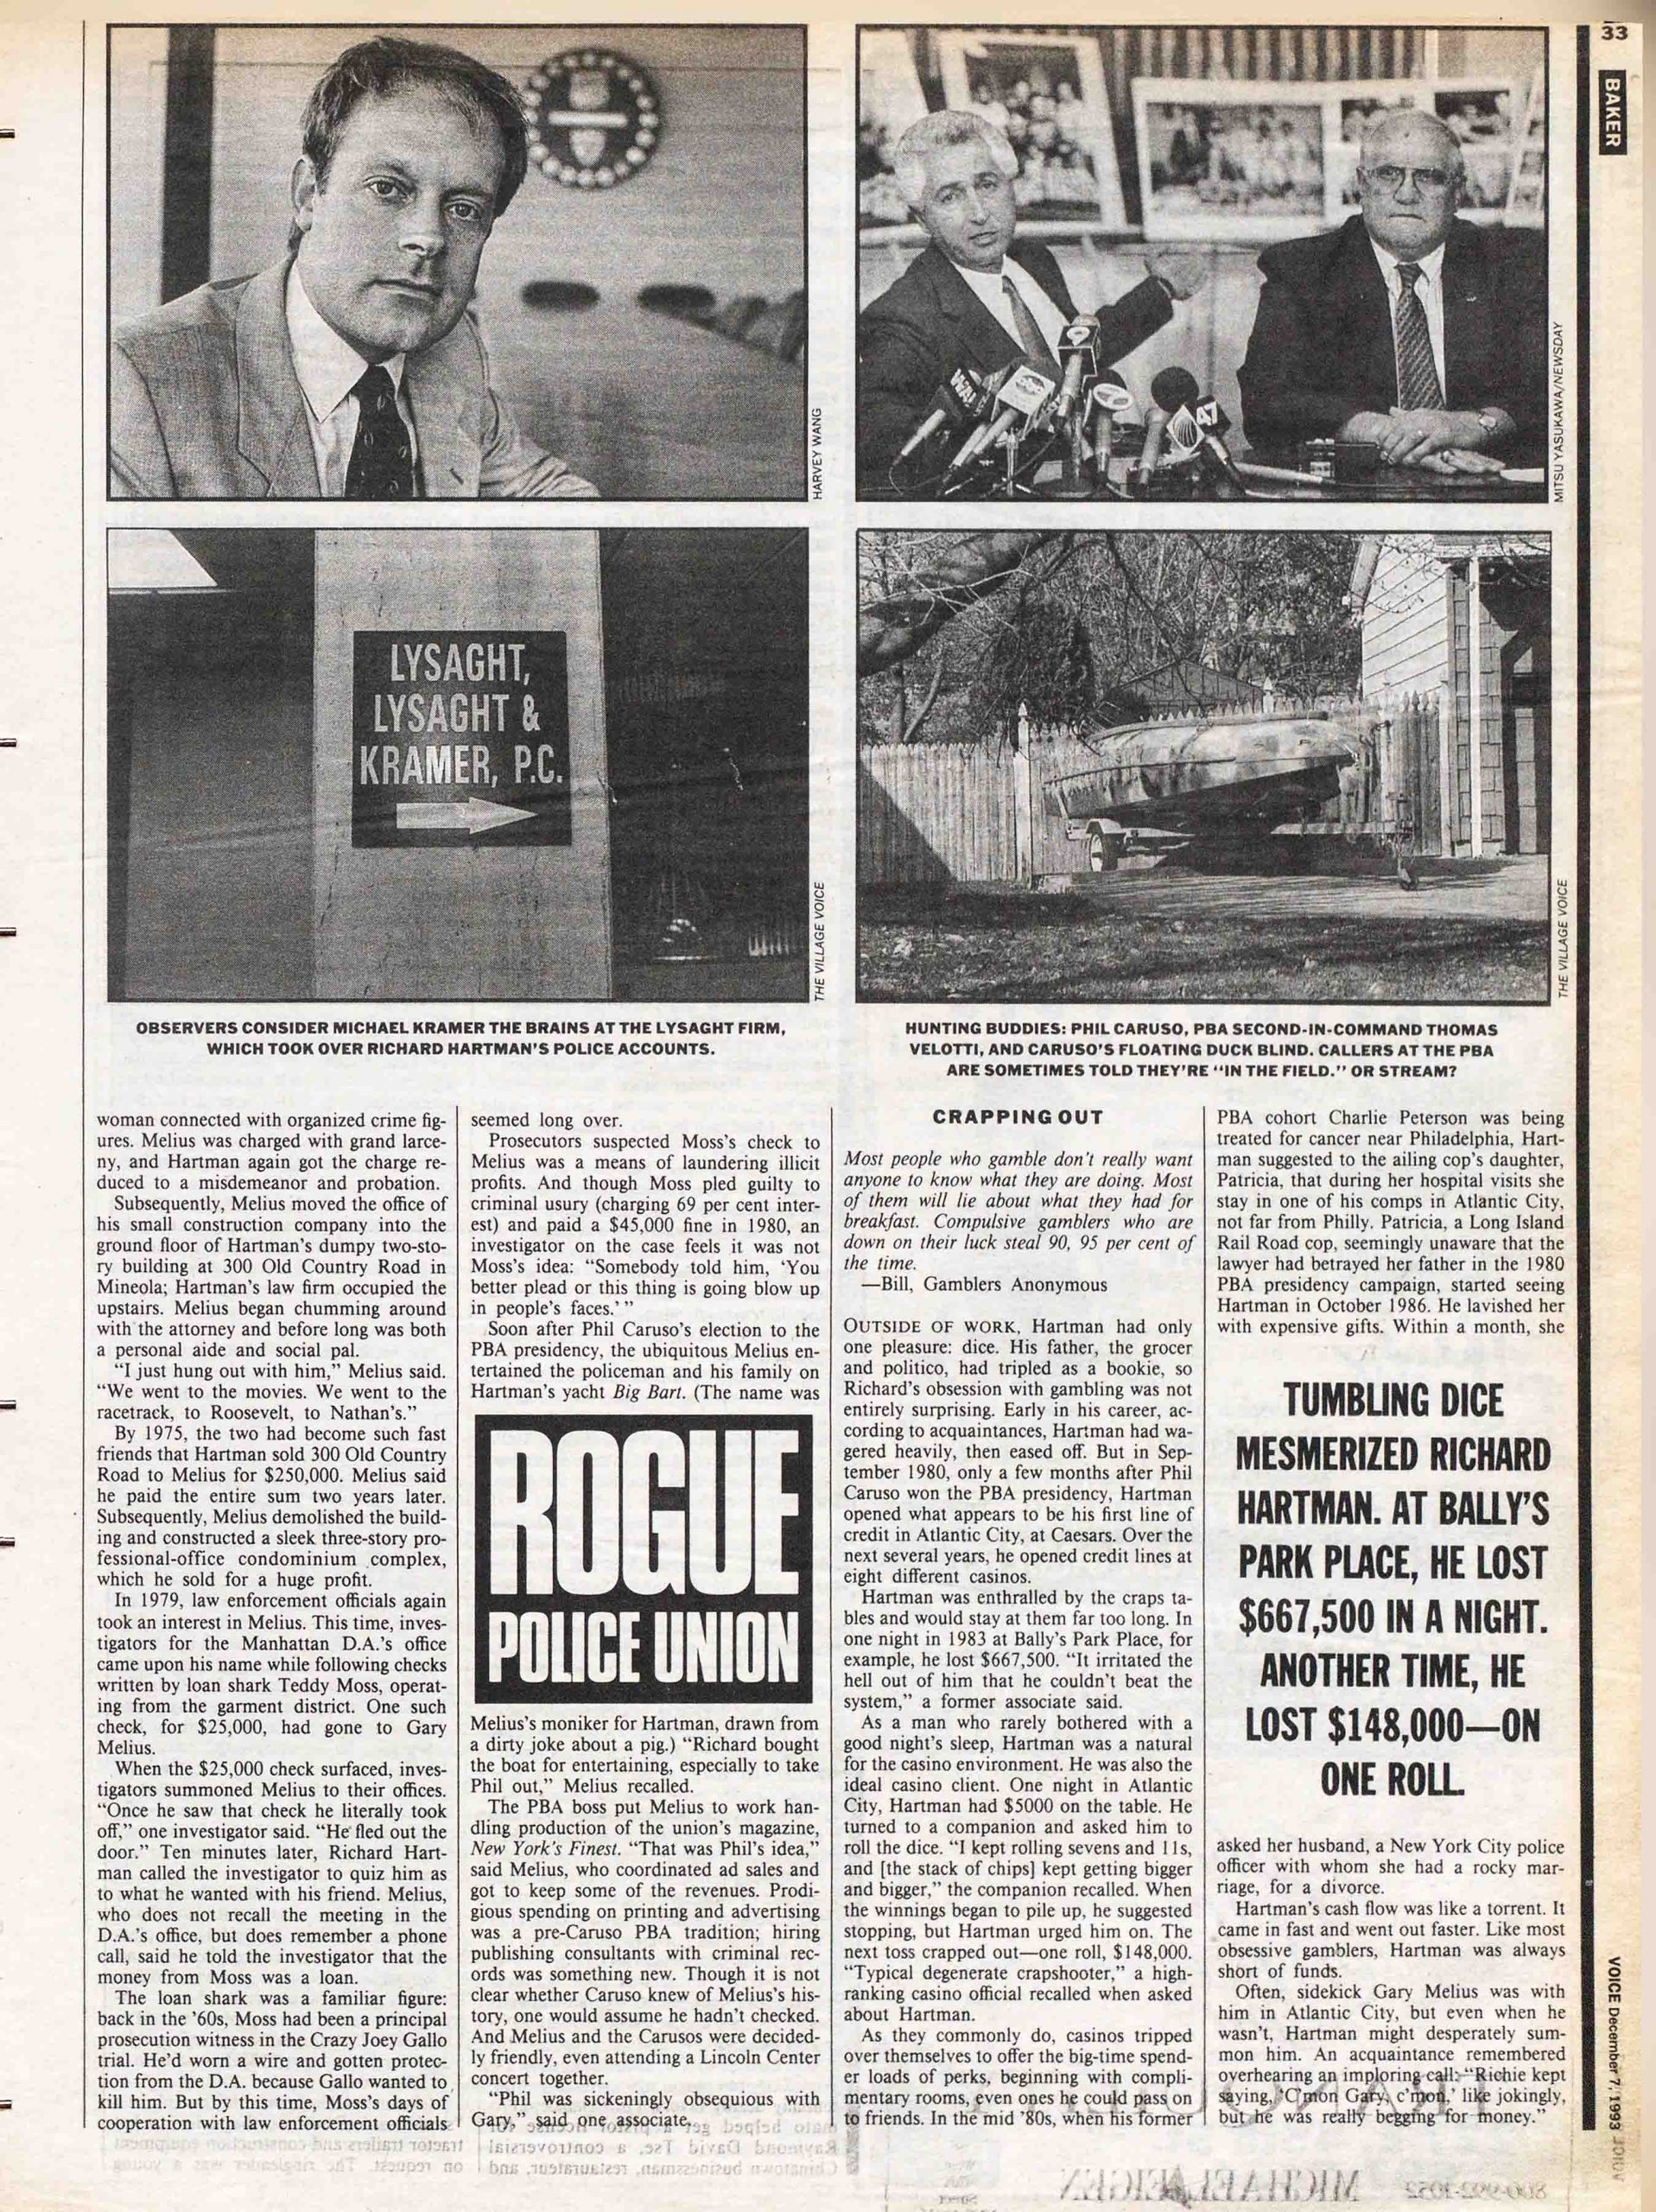 1993 Village Voice article by Russ Baker about corruption in the NYPD's Patrolman's Benevolent Association